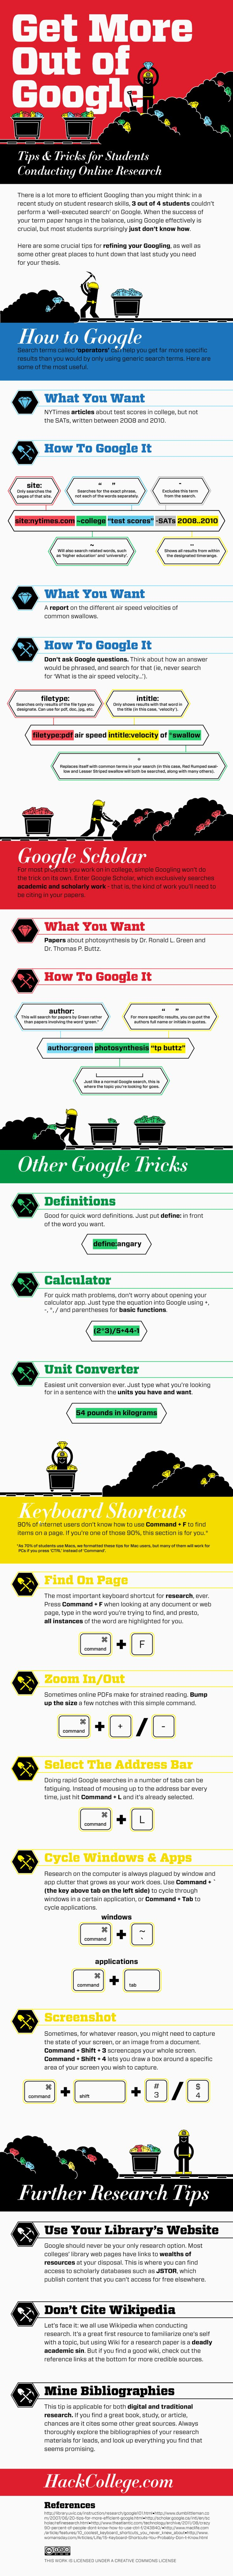 Awesome Google Search Tricks Infographic